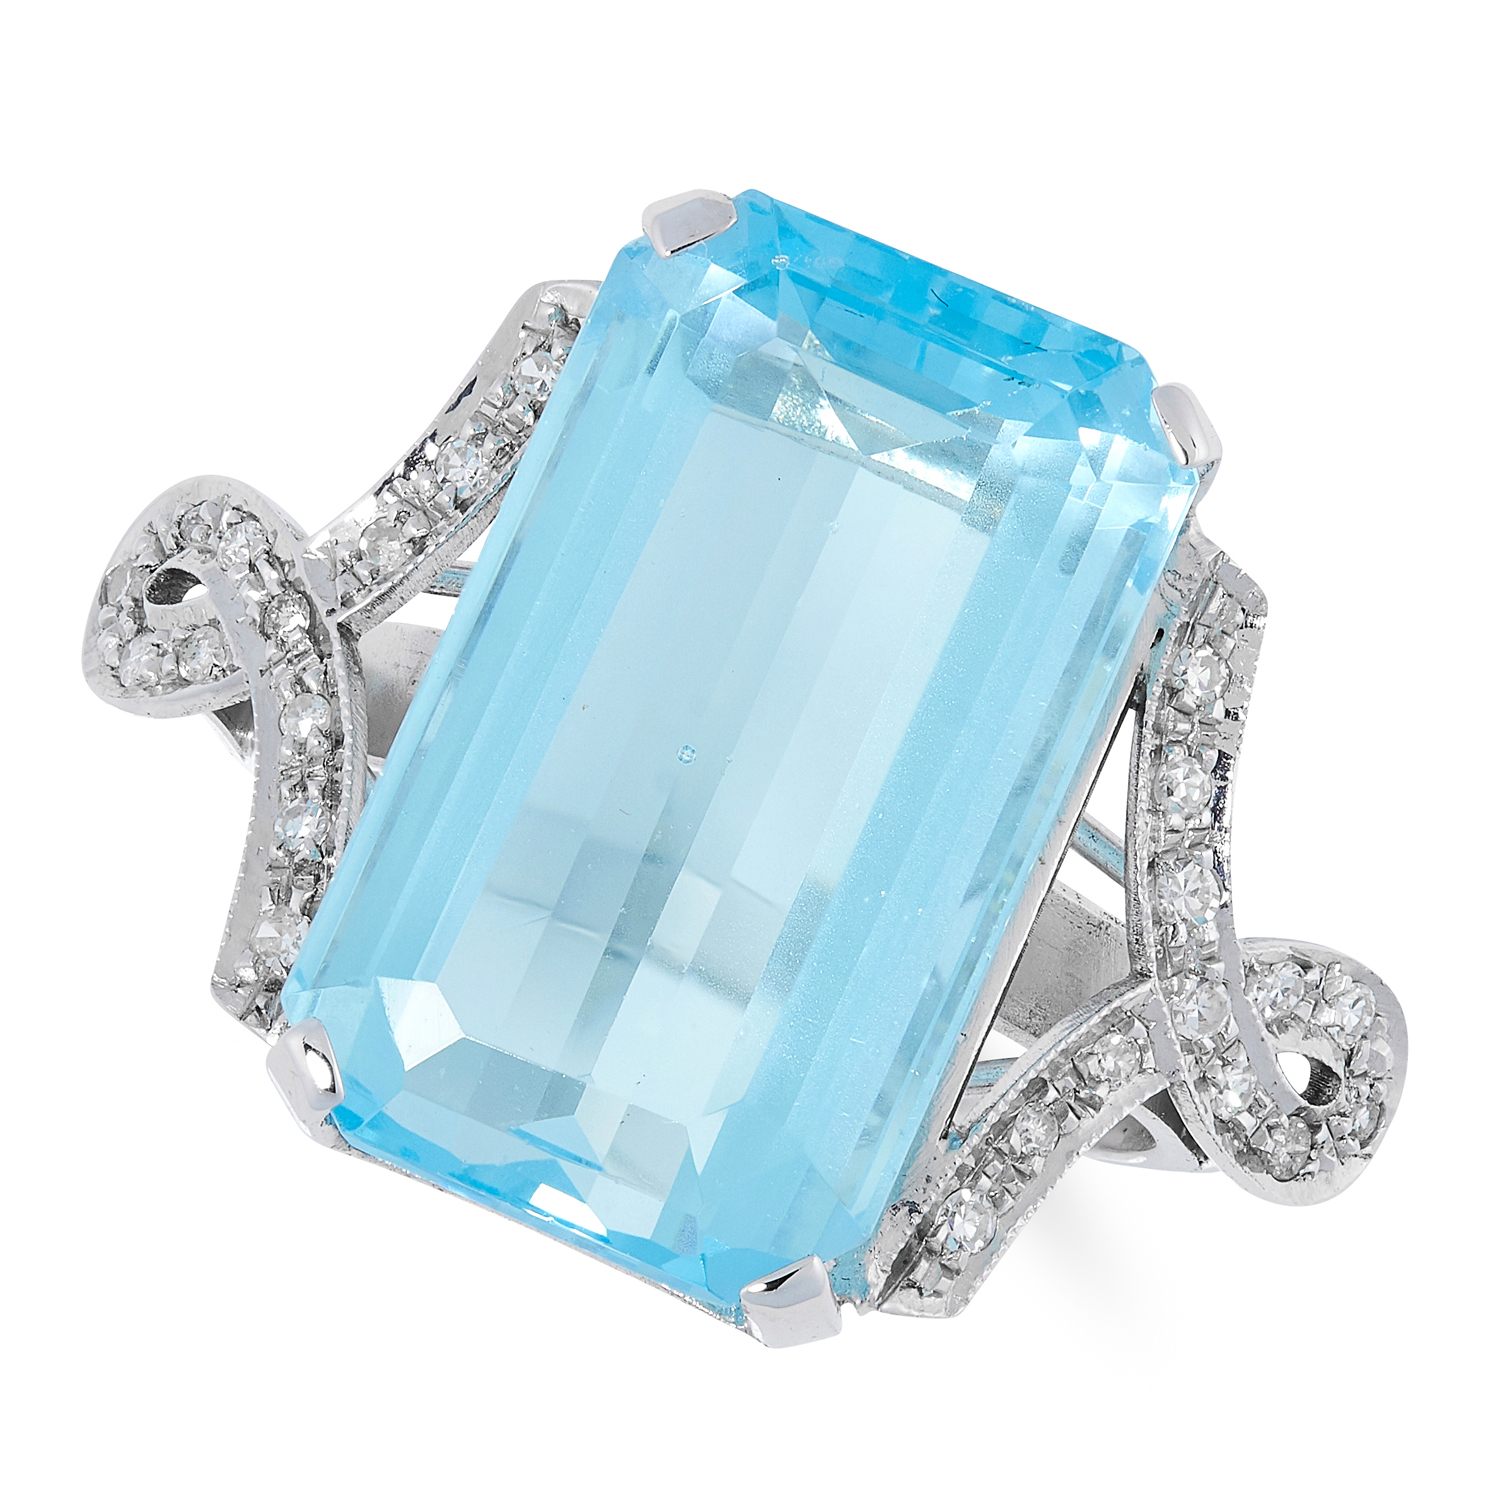 A BLUE TOPAZ AND DIAMOND DRESS RING set with an emerald cut blue topaz of approximately 18.00 carats